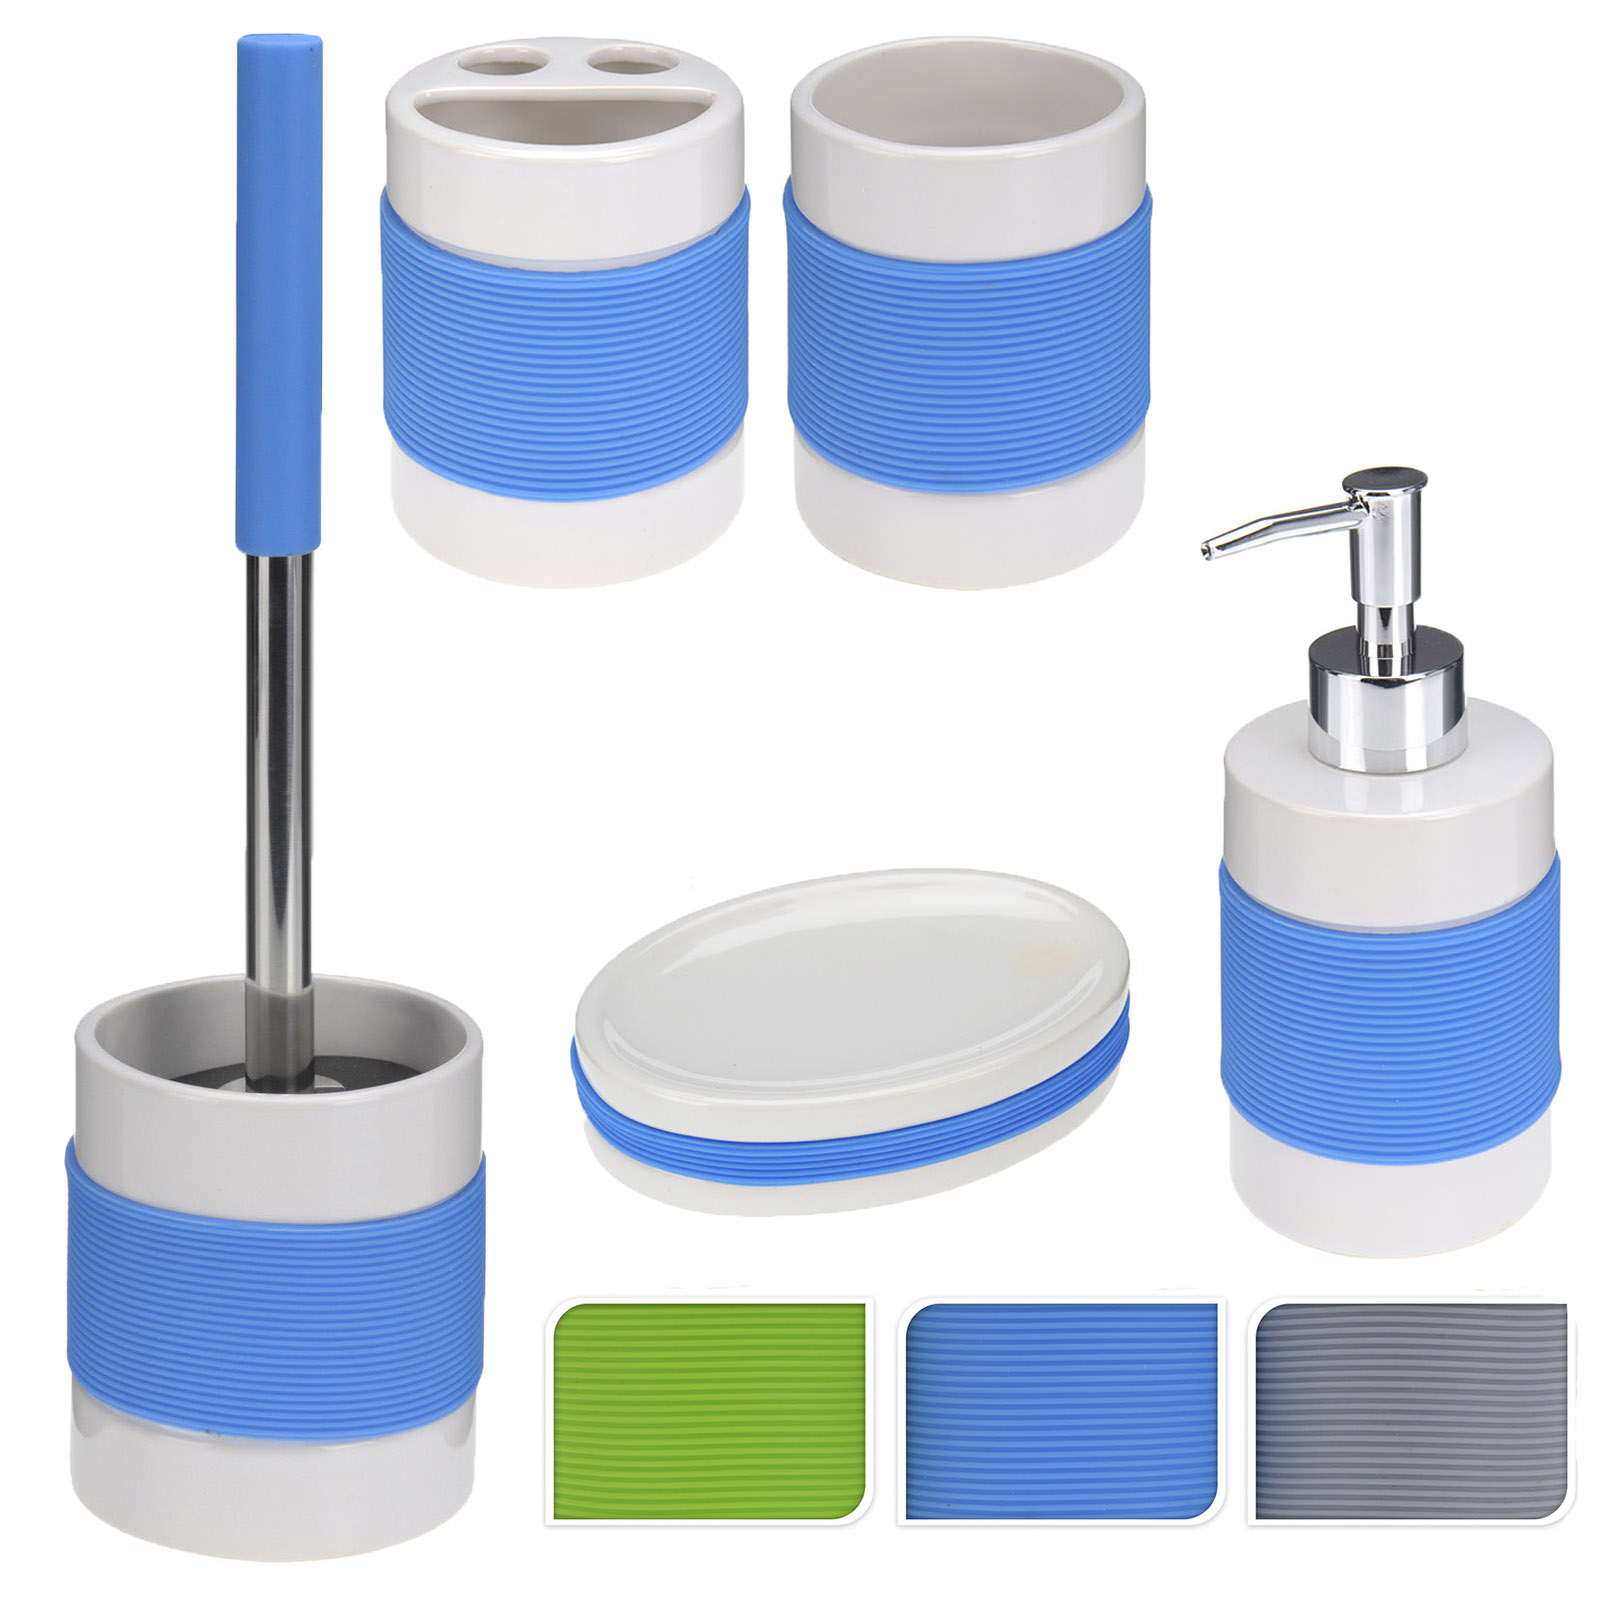 Bathroom accessories set silicone toilet cleaning brush for Bathroom soap dispensers bath accessories